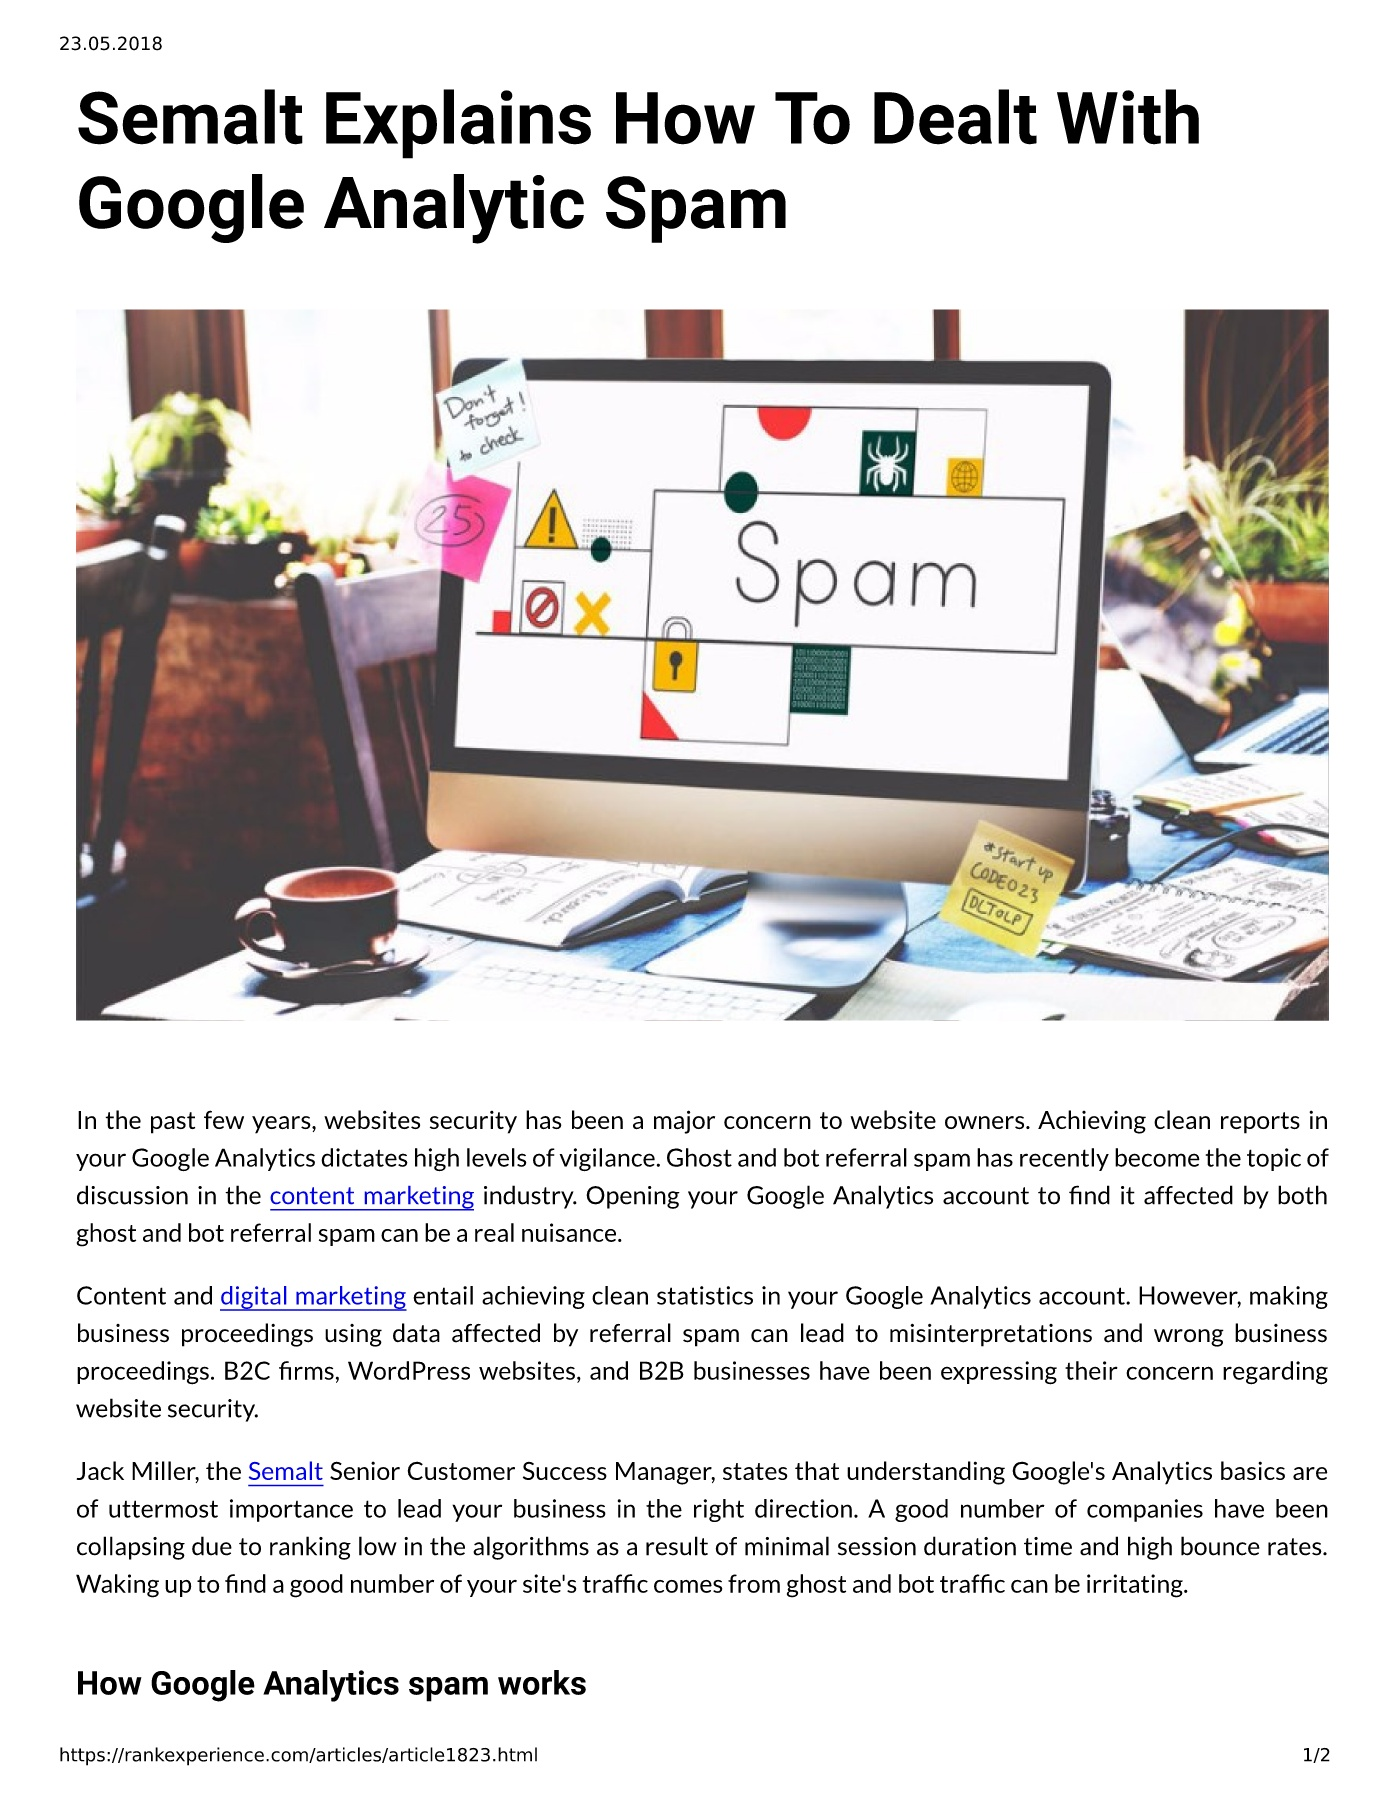 Semalt Explains How To Dealt With Google Analytic Spam Pages 1 - 2